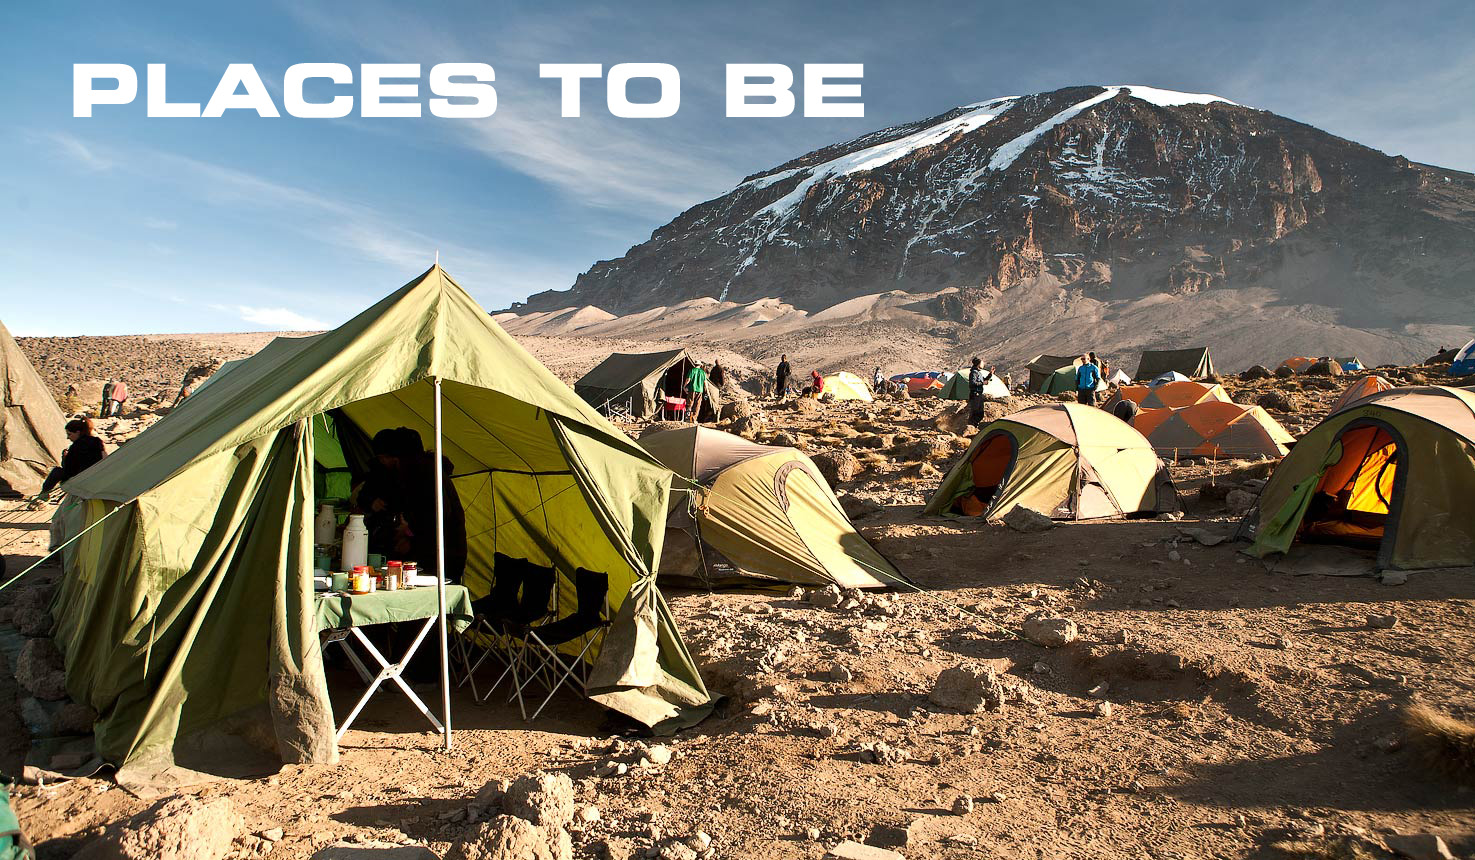 14|11|2014 – GEOBUCH News: Places to be